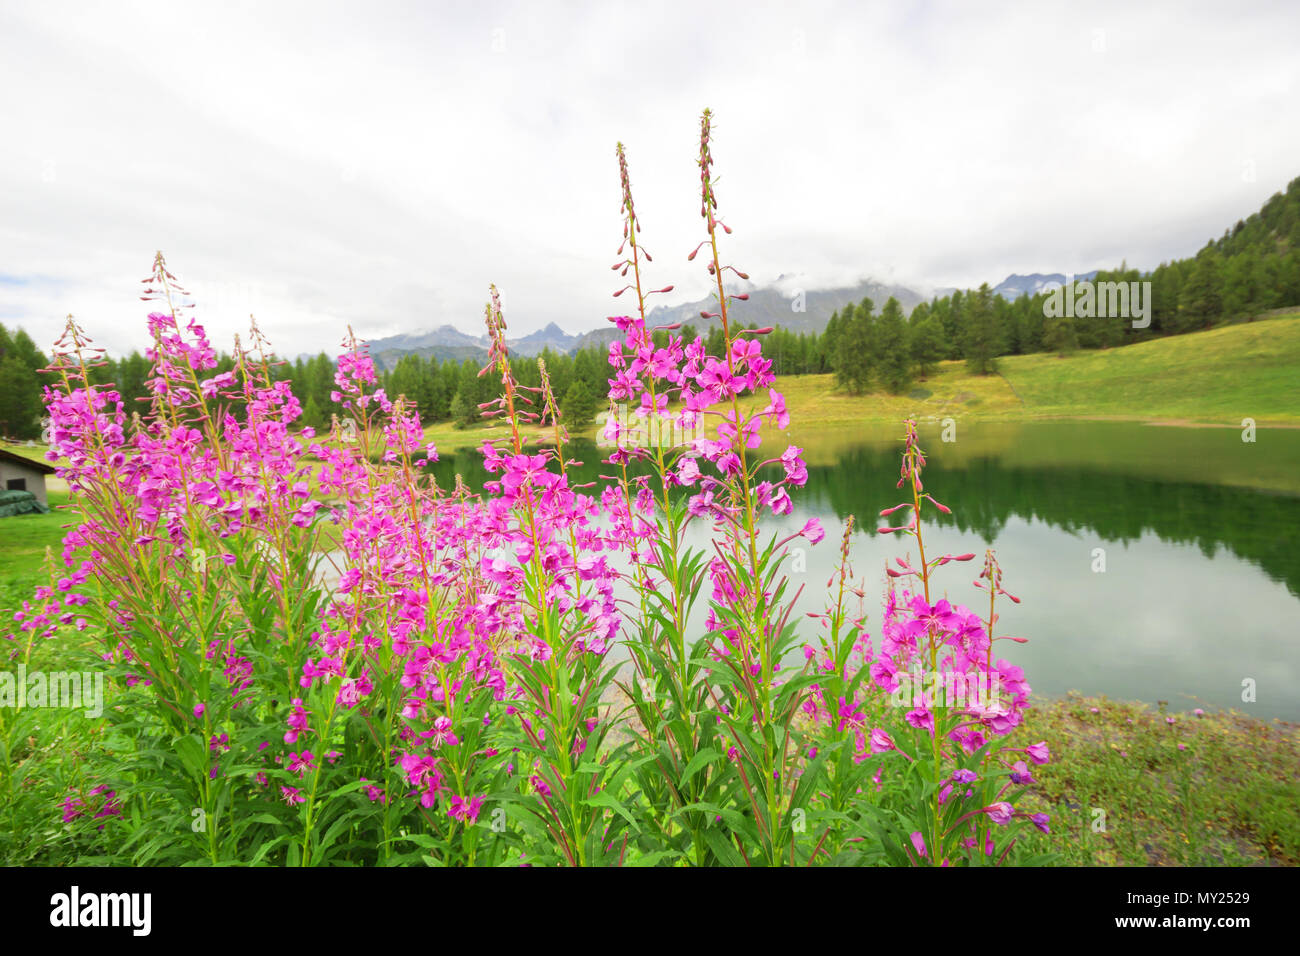 Pink Flower Field Pink Flowers Grows In Front Of Lake Beautiful